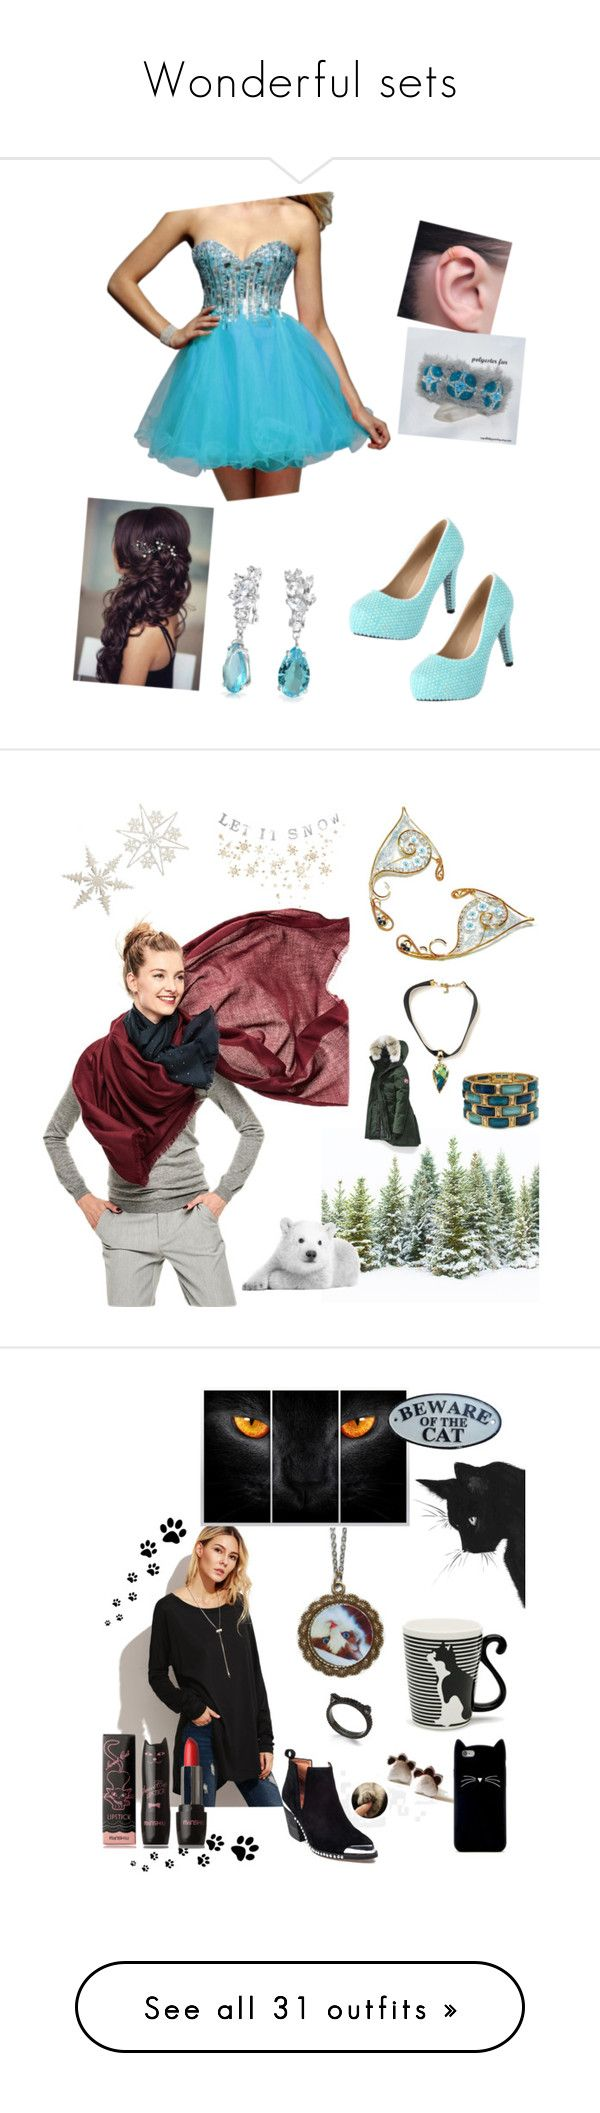 """""""Wonderful sets"""" by frostedfire-kate ❤ liked on Polyvore featuring Clarisse, Bling Jewelry, Canada Goose, Bethany Lowe, Jeffrey Campbell, Miya Company, Kate Spade, Forever 21, MPG and Y-3"""